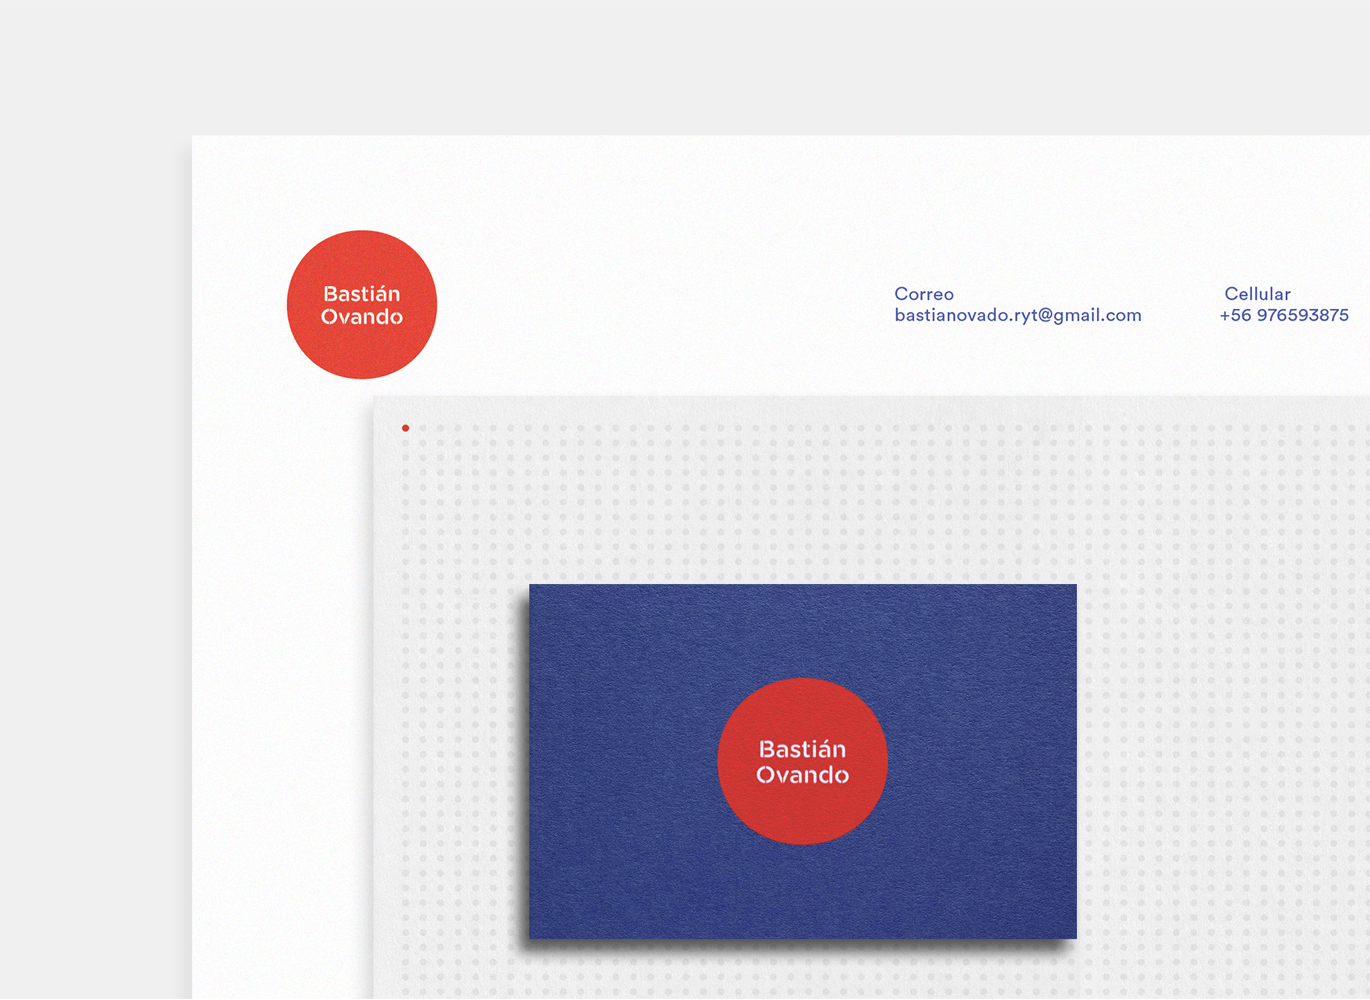 Bastian-Ovando_-business-cards-and-letterhead©-elena-manfredi_business-card-detail_thumb